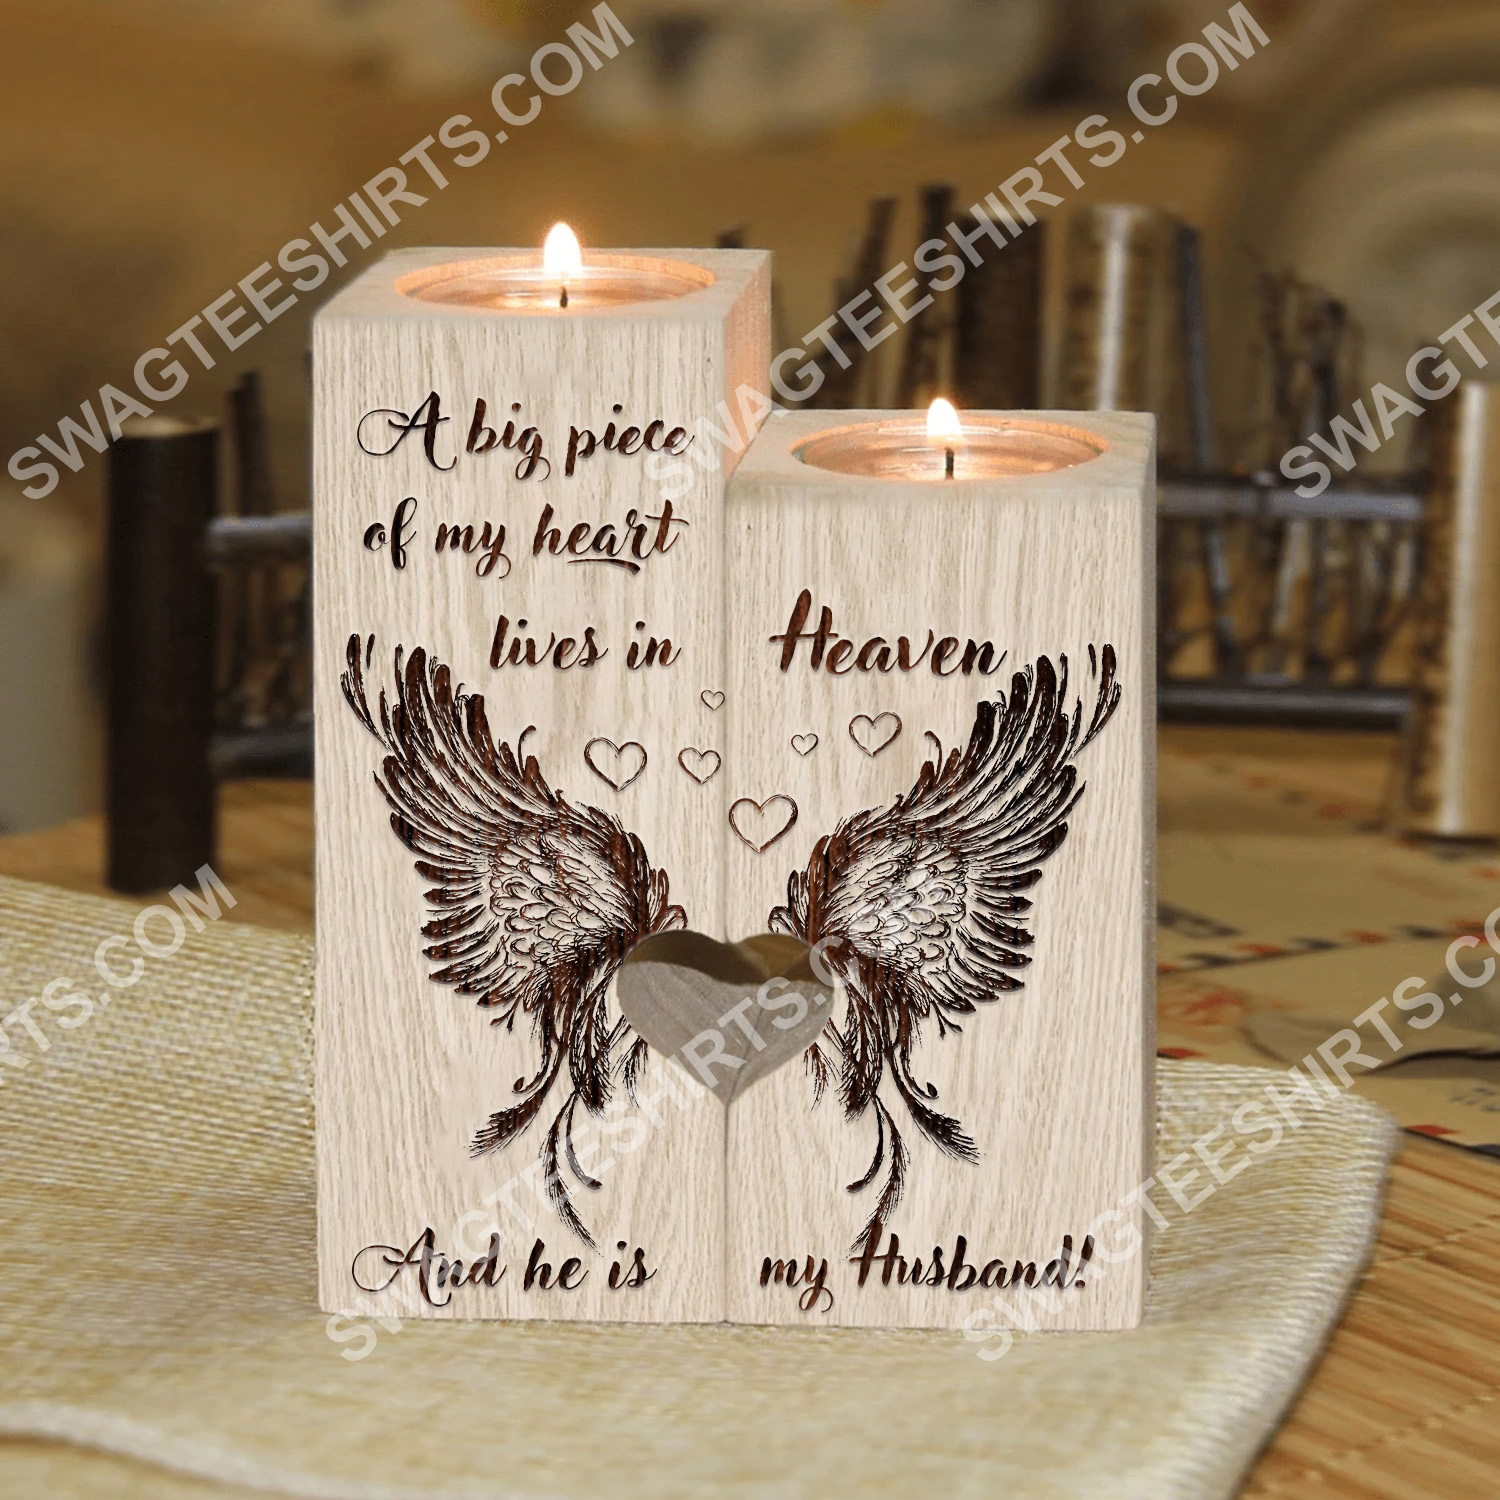 a big piece of my heart lives in heaven and he is my husband candle holder 3 - Copy - Copy